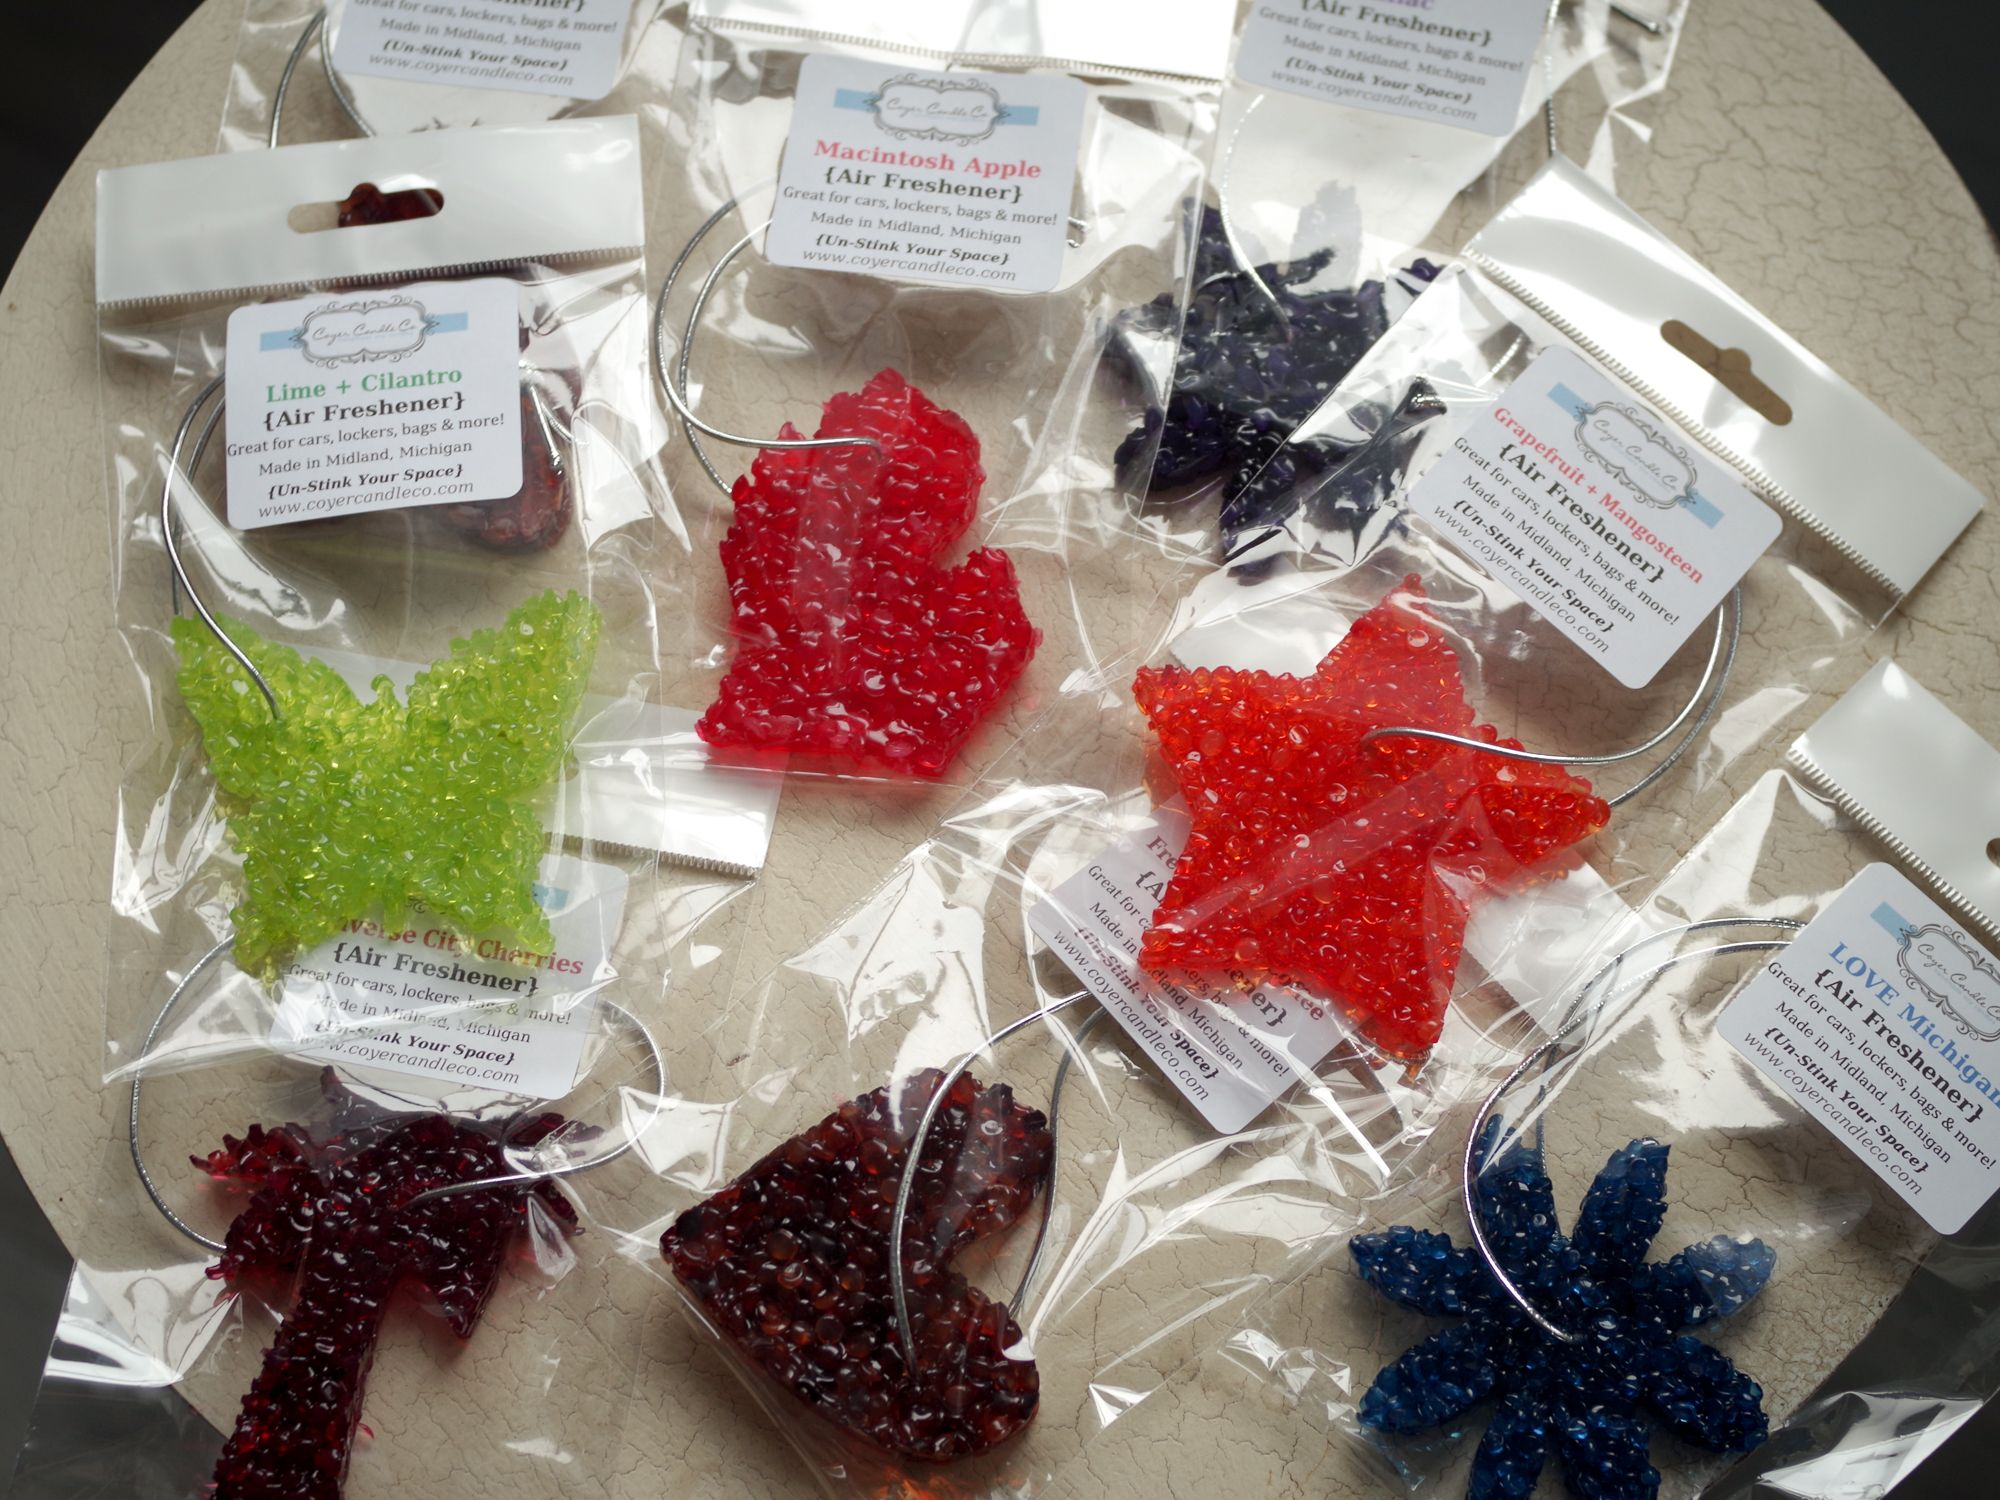 Pin by Coyer Candle Co. on Mitten Made Fundraising Coyer